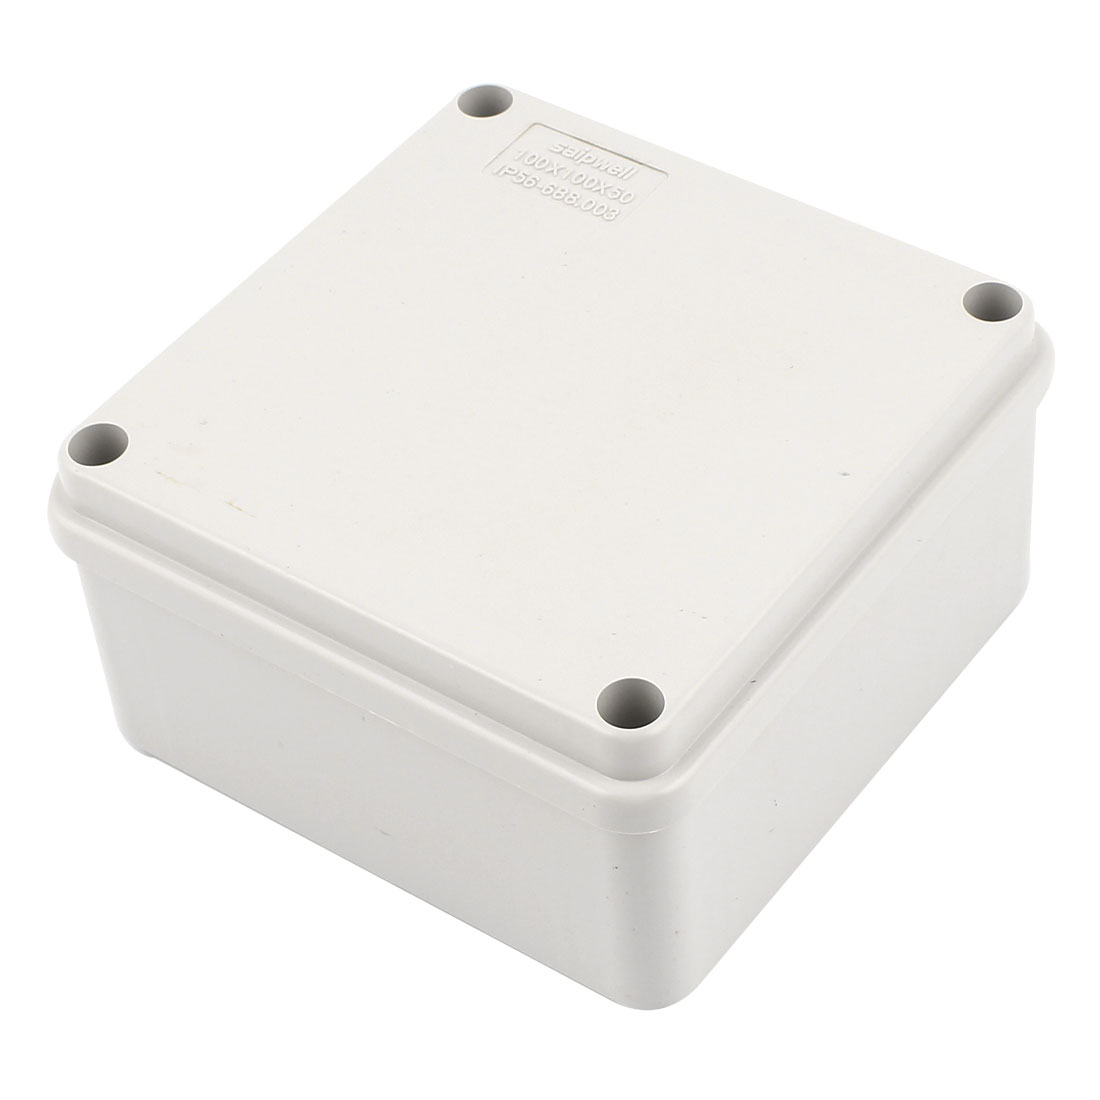 100mm x 100mm x 50mm Plastic Dustproof IP65 Sealed DIY Joint Electrical Junction Box